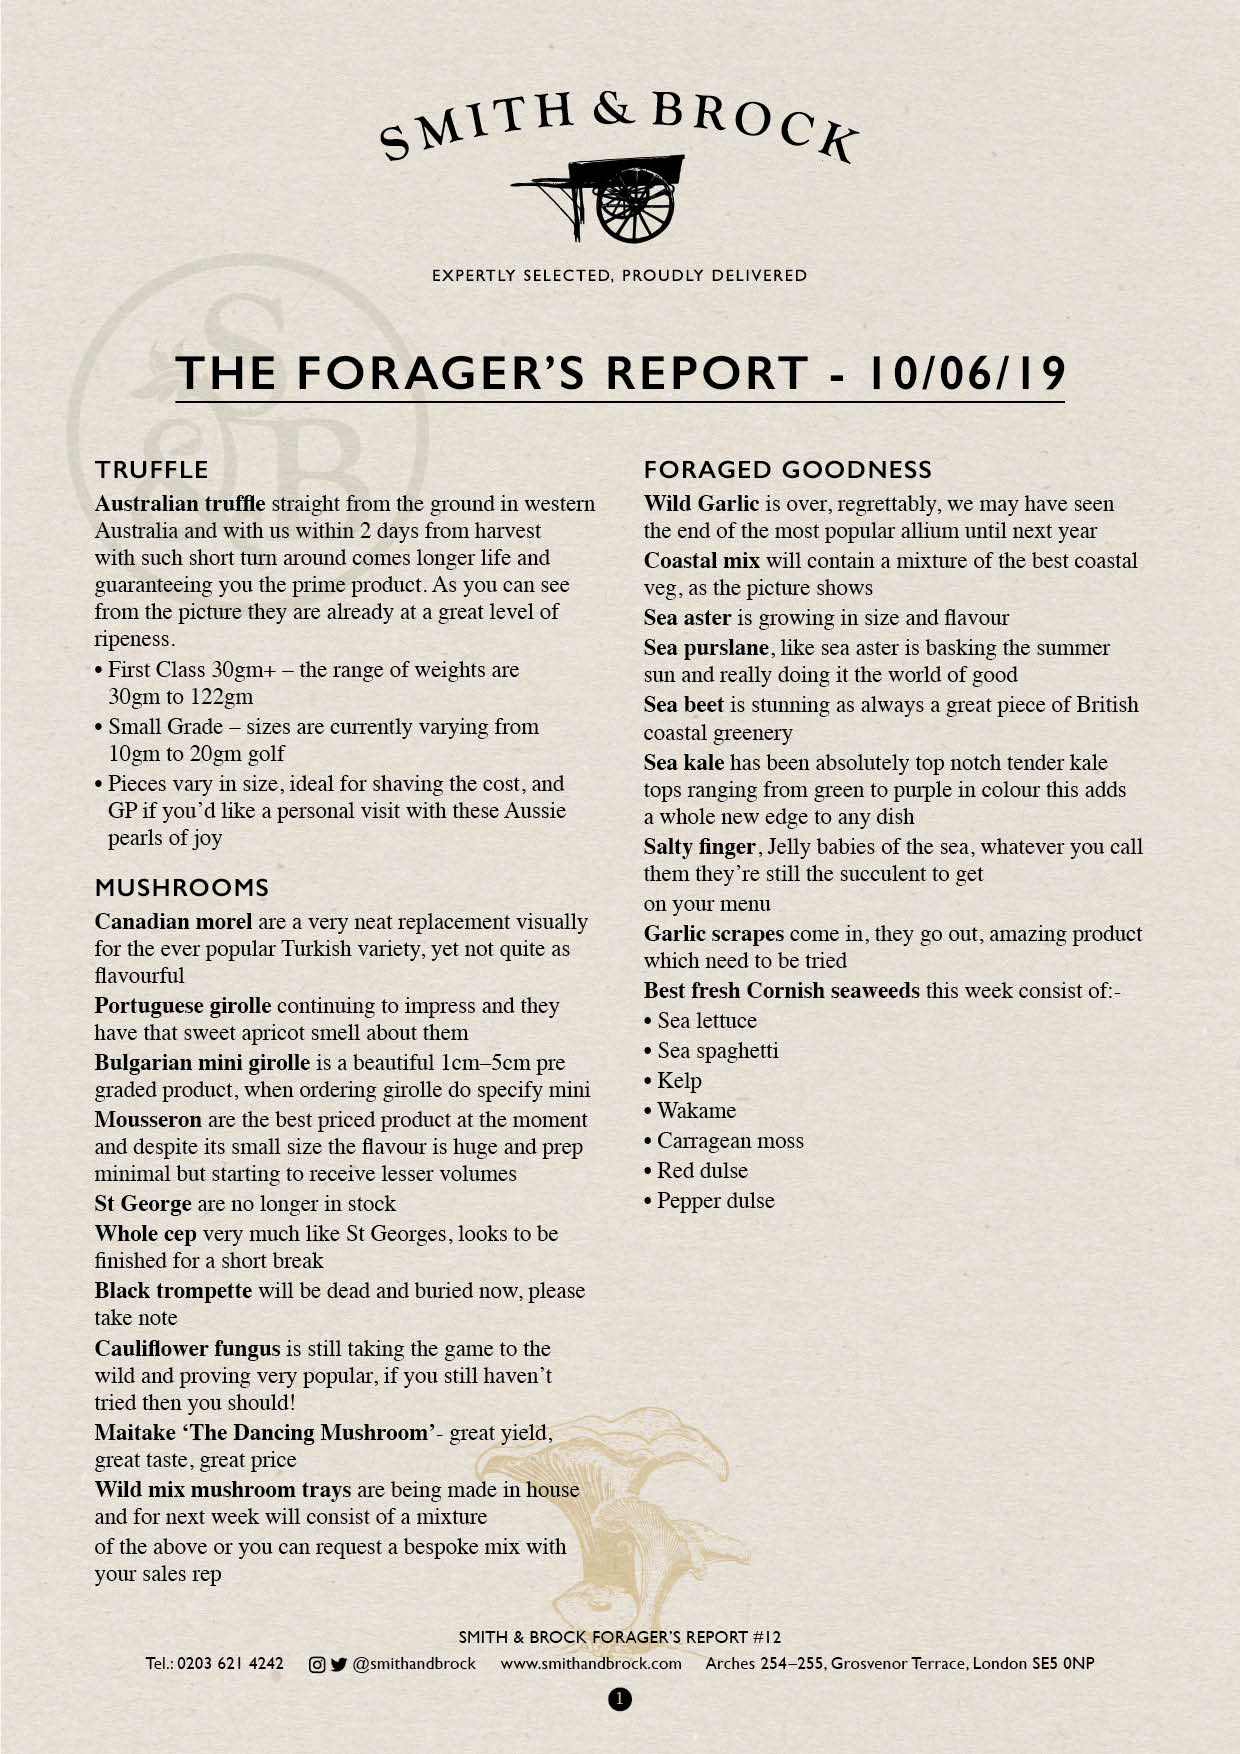 Smith&Brock Foraged Products Report 10 June 2019 12